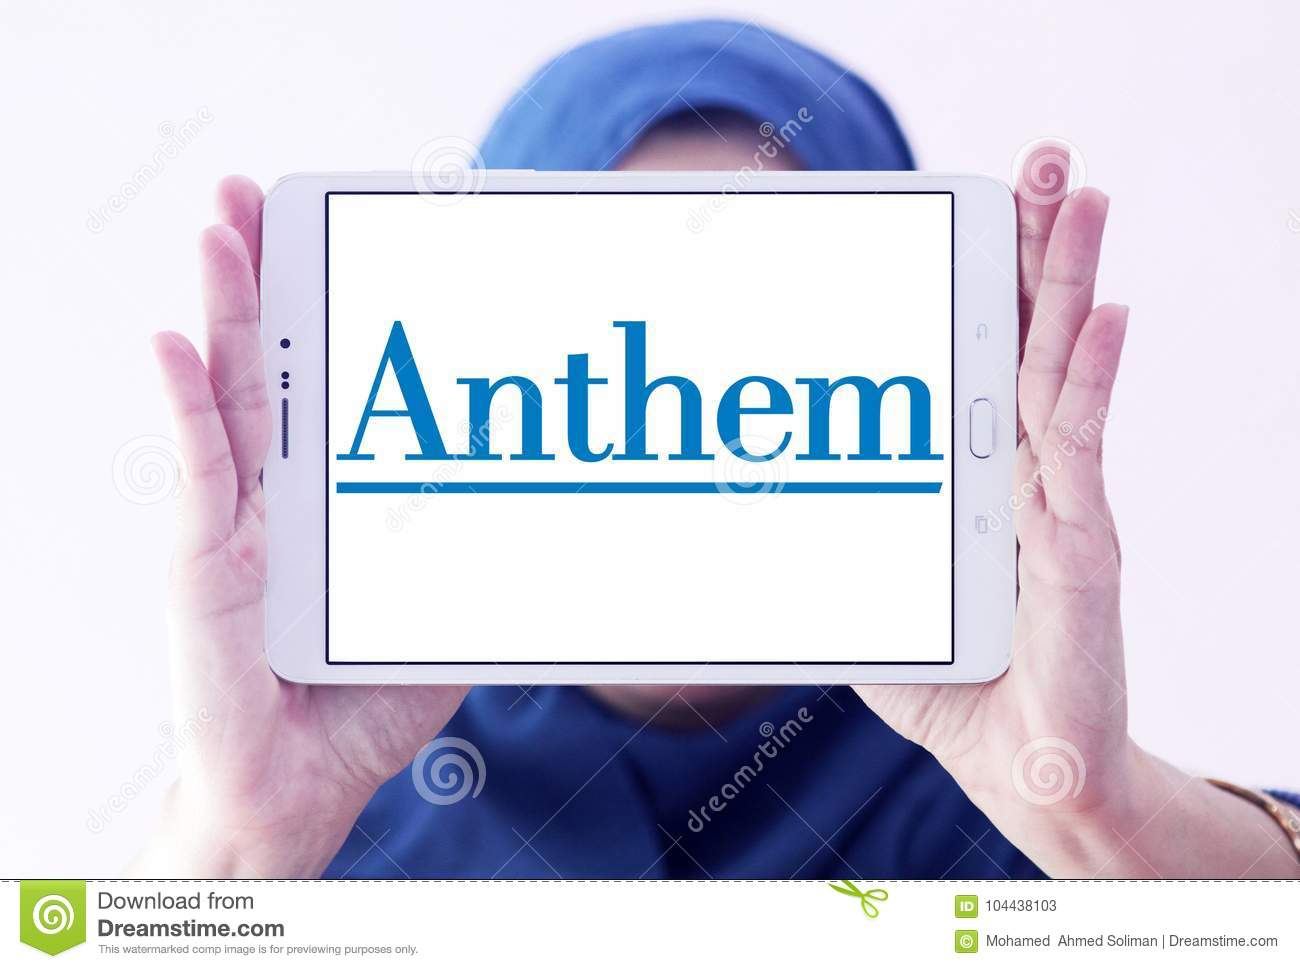 Anthem Health Insurance Company Logo Editorial Stock Photo ...